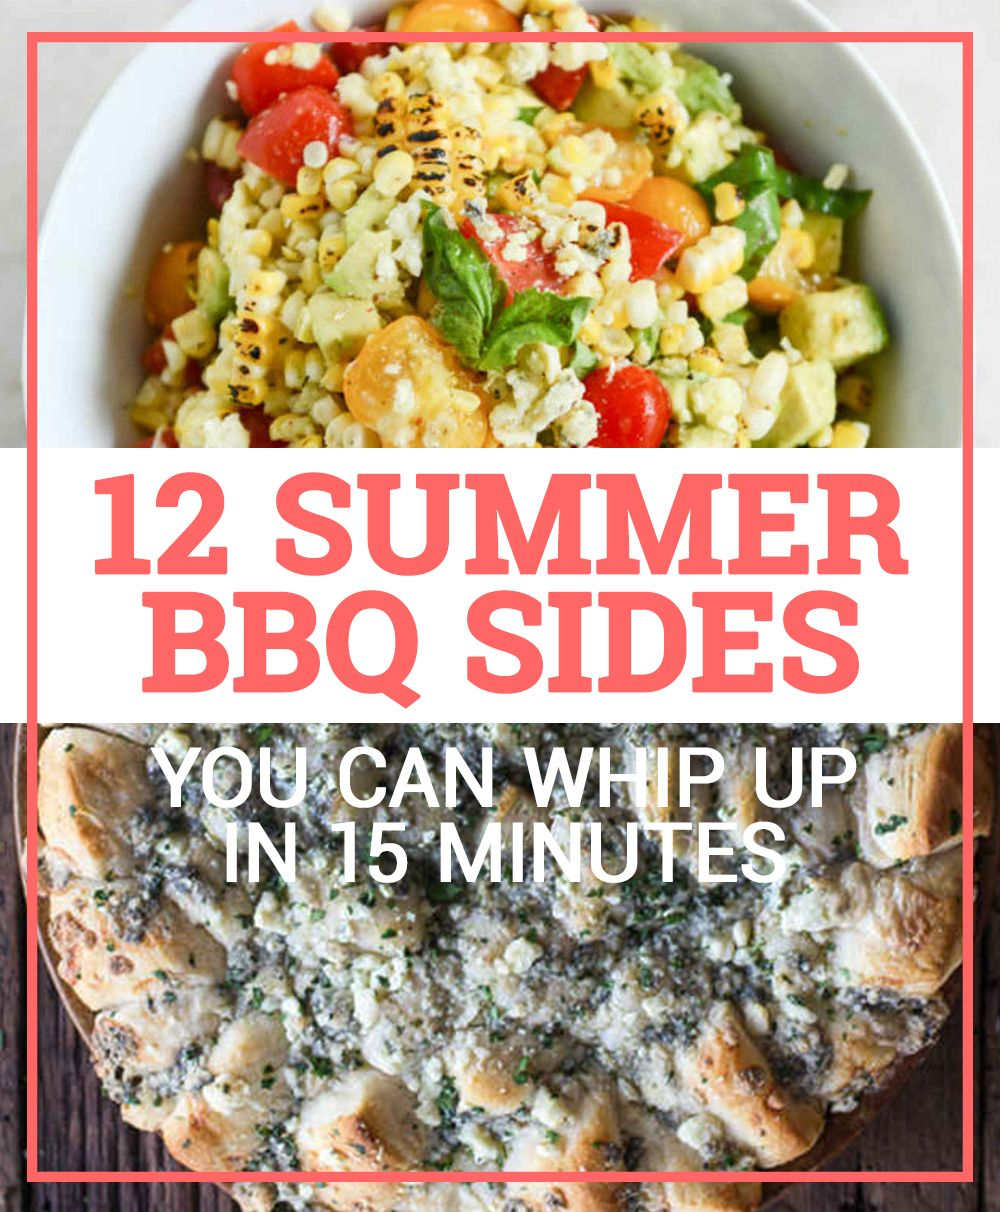 12 Summer BBQ Sides You Can Whip Up In 15 Minutes